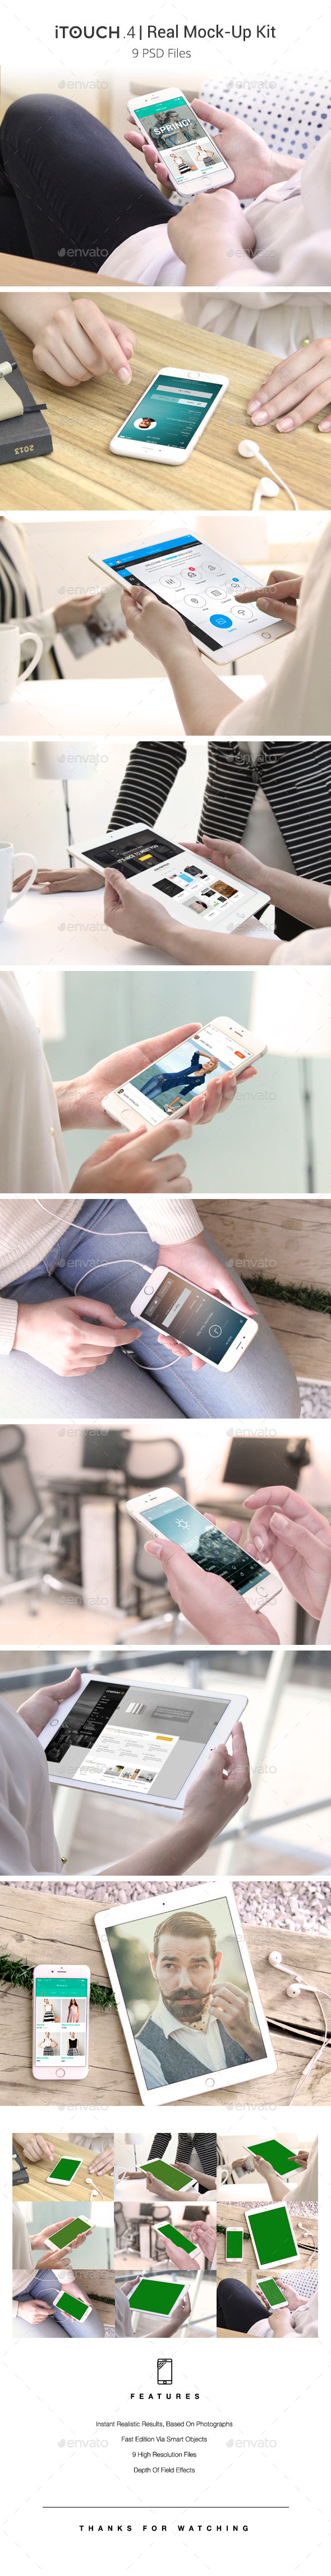 GraphicRiver iTouch 4 09 Photorealistic MockUp 11839823